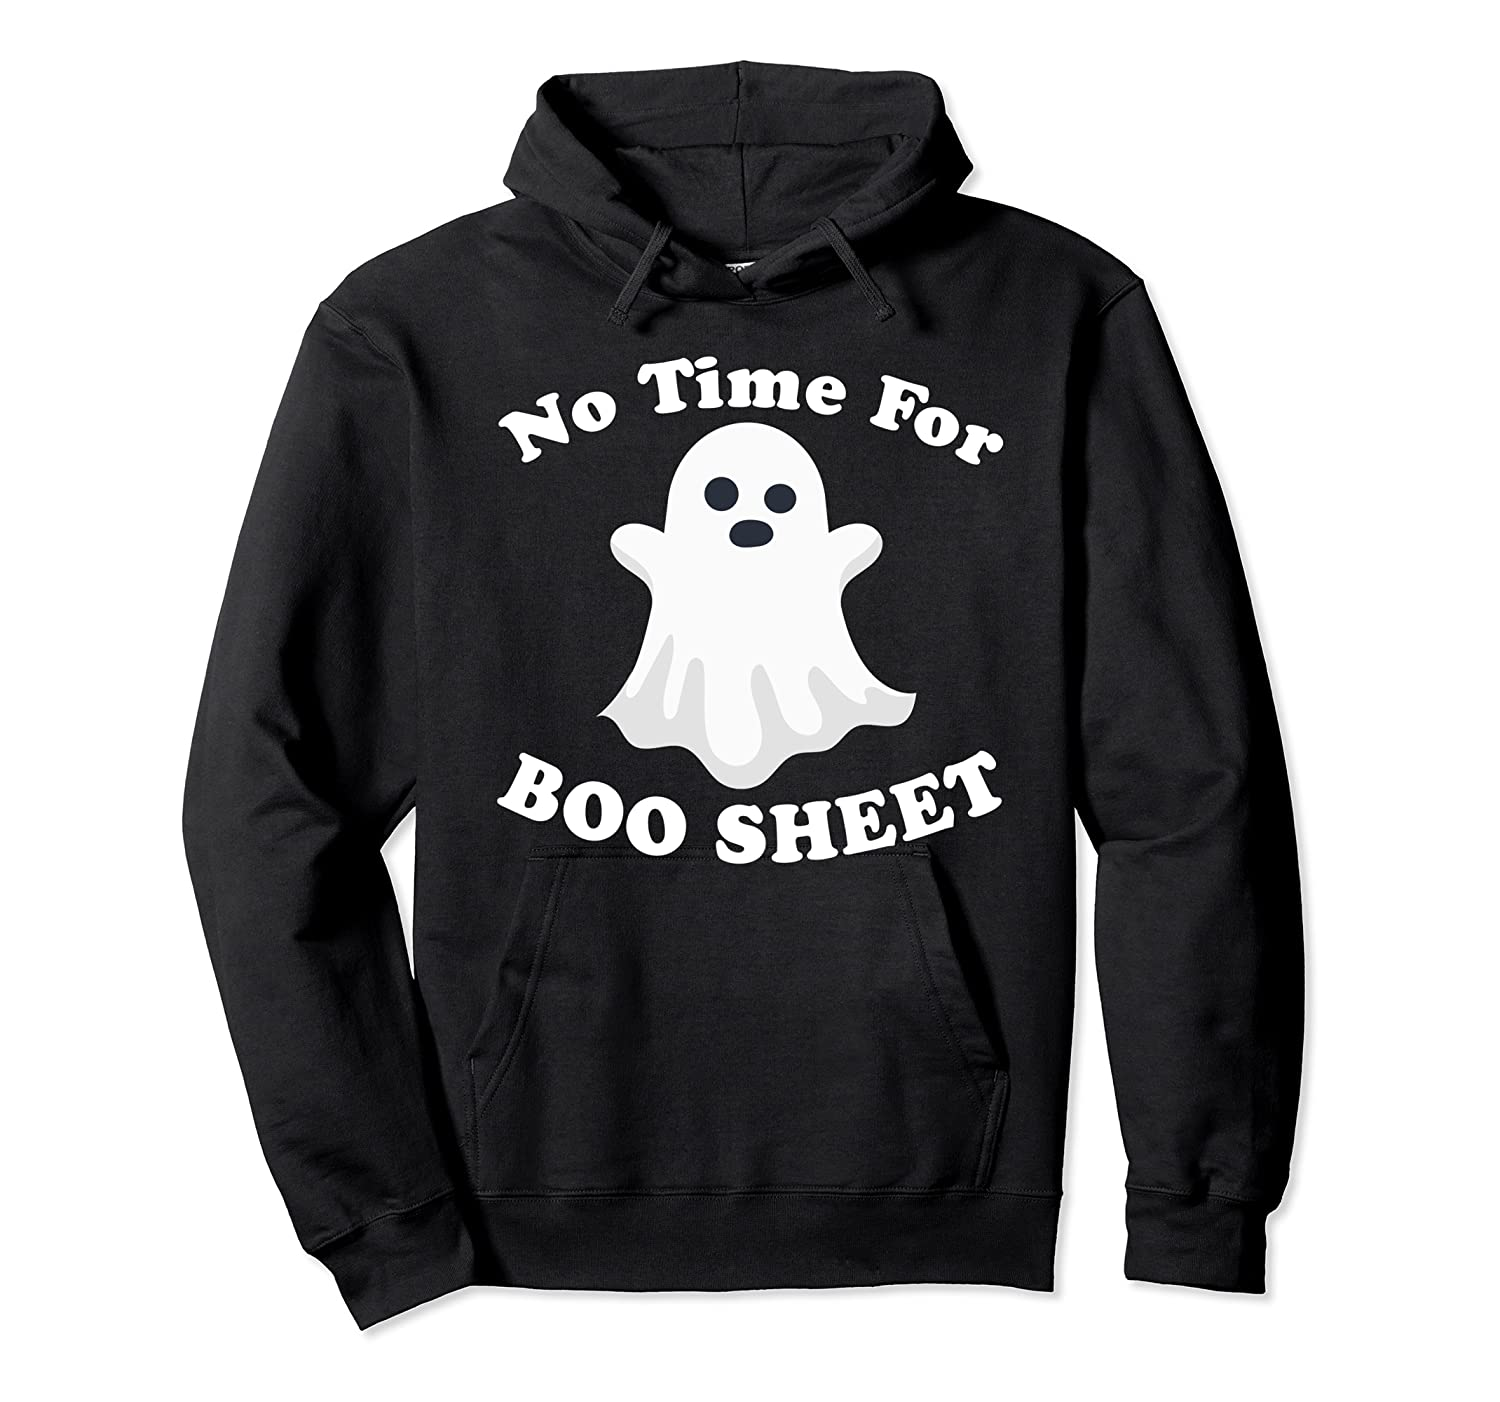 Halloween No Time For Boo Sheet Mom Funny Pun Sarcasm Shirts Unisex Pullover Hoodie